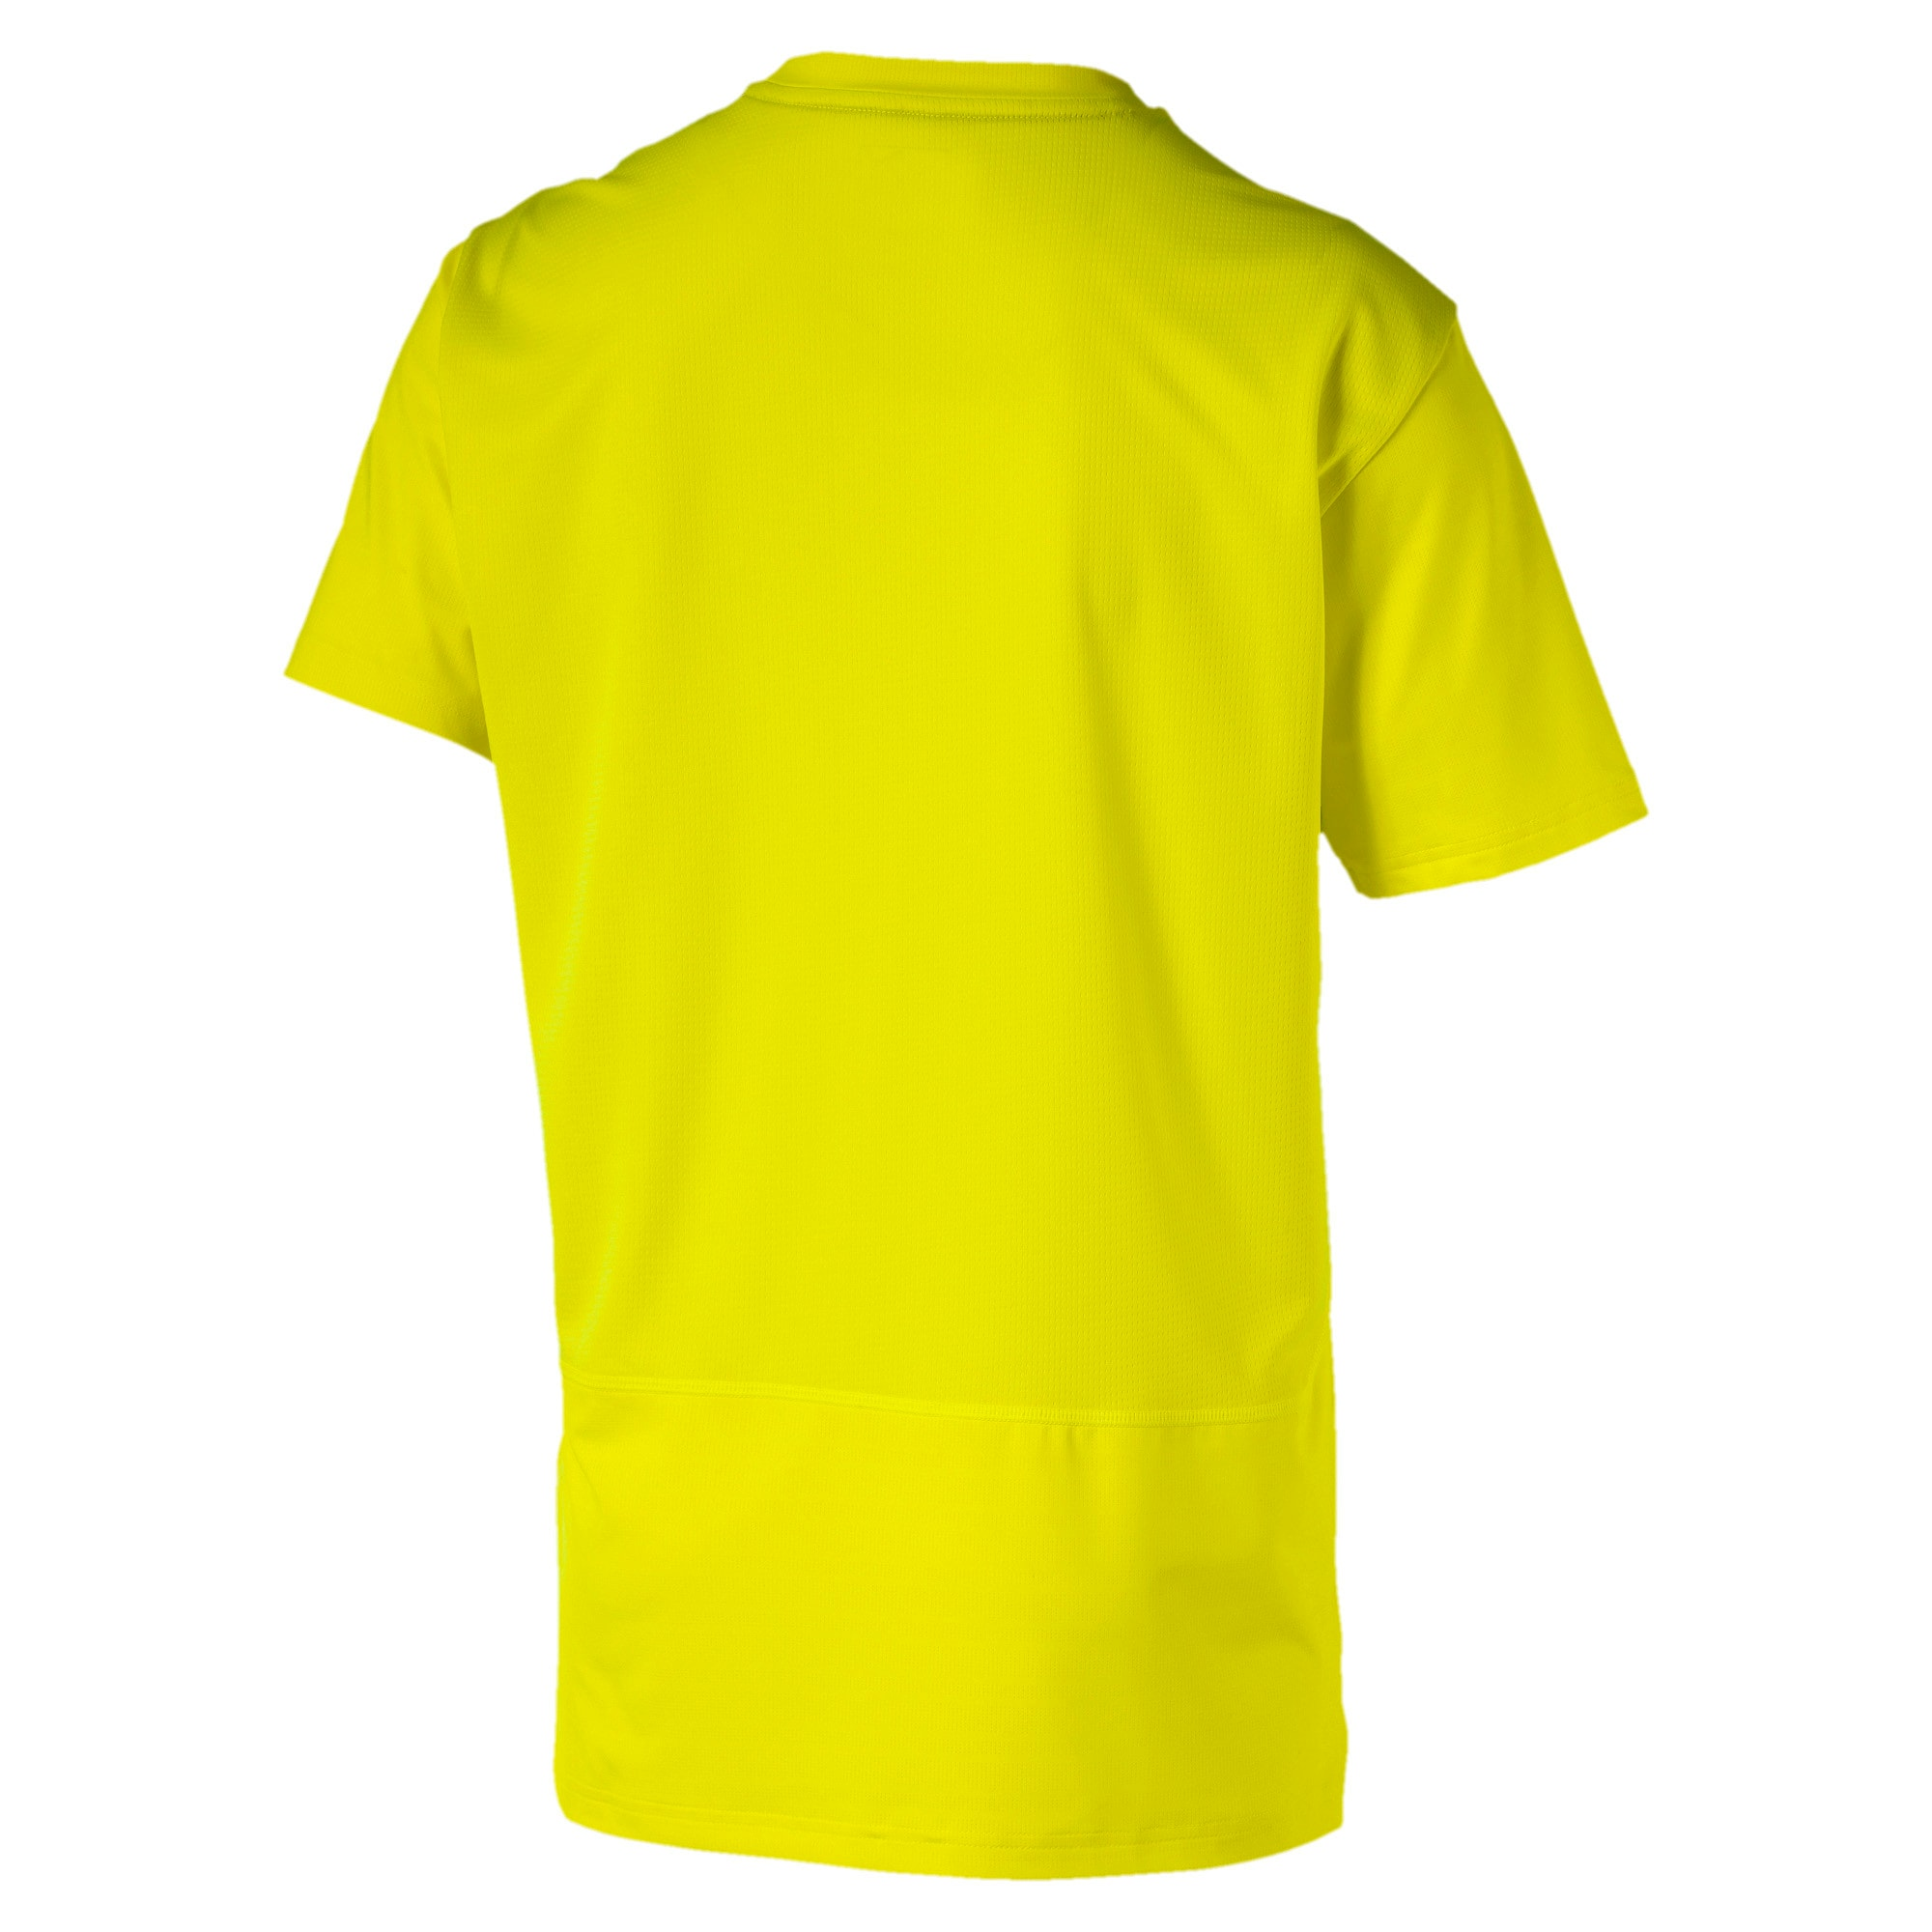 Reflective Tech Men's Training Tee, Yellow Alert, large